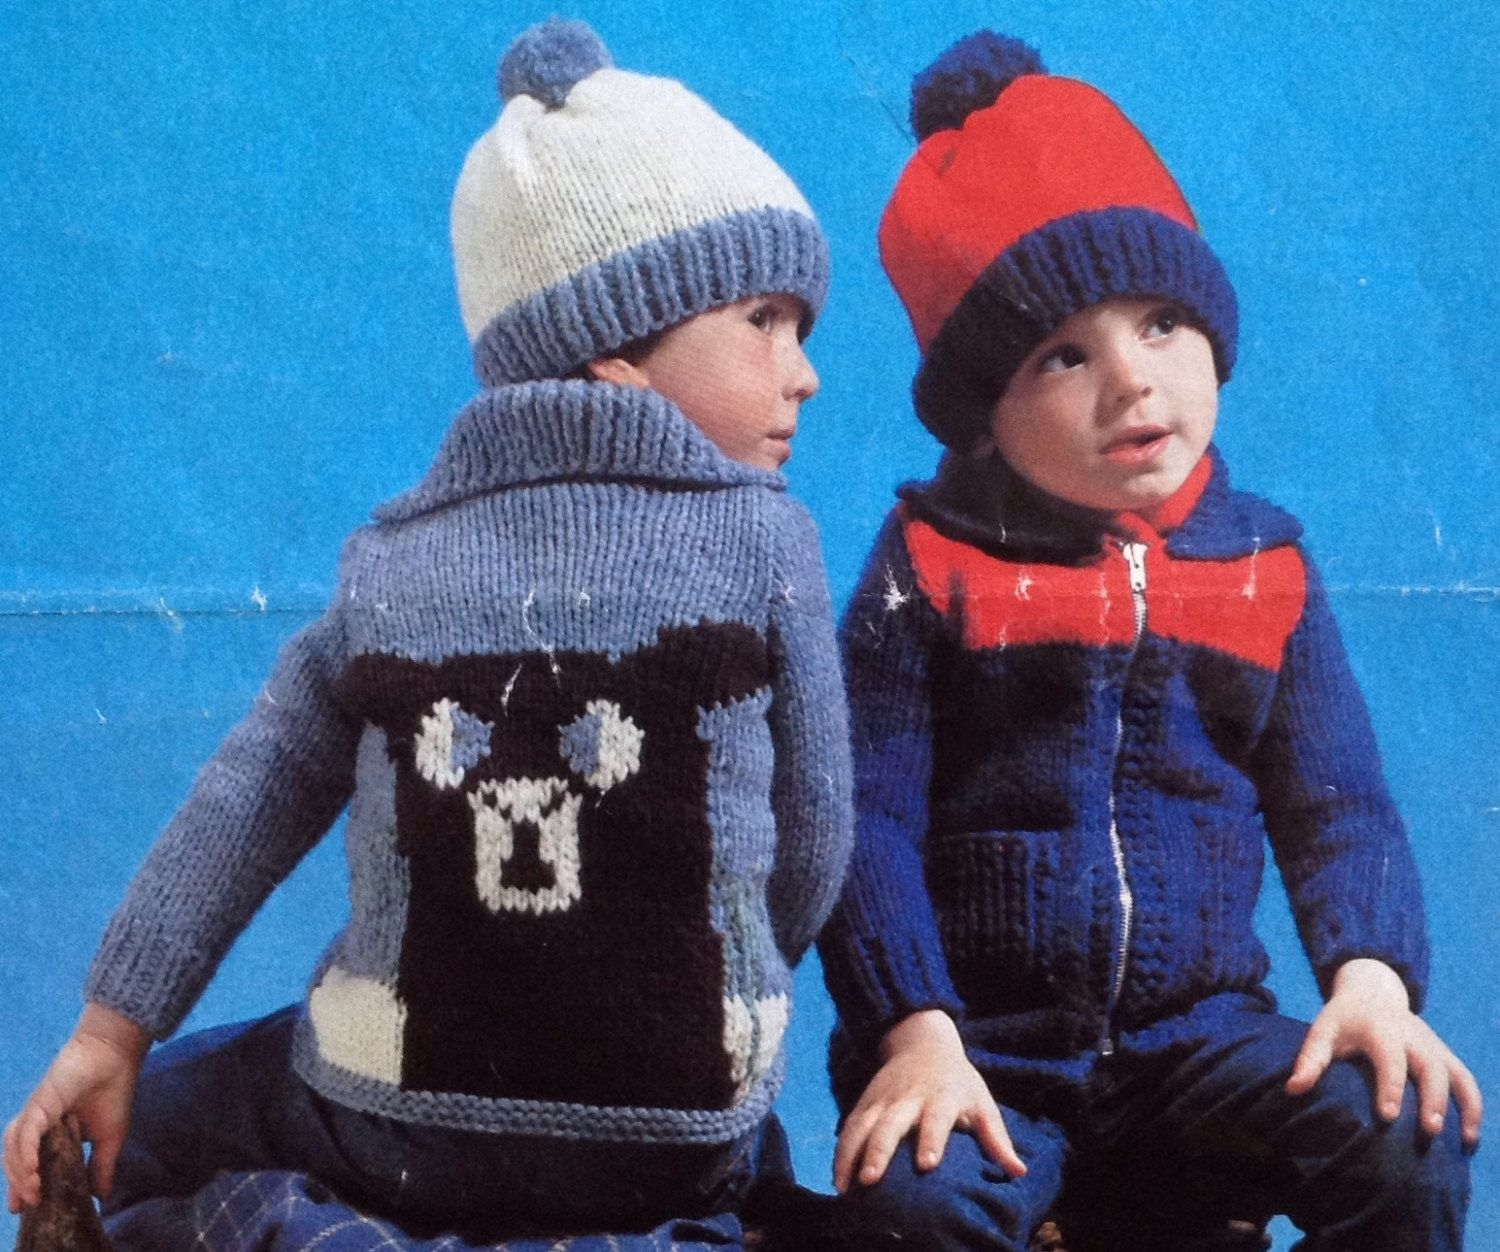 Childrens jacket chunky knitting pattern size 20 24 51 61cm by childrens jacket chunky knitting pattern size 20 24 51 61cm by makenshare on etsy bankloansurffo Choice Image